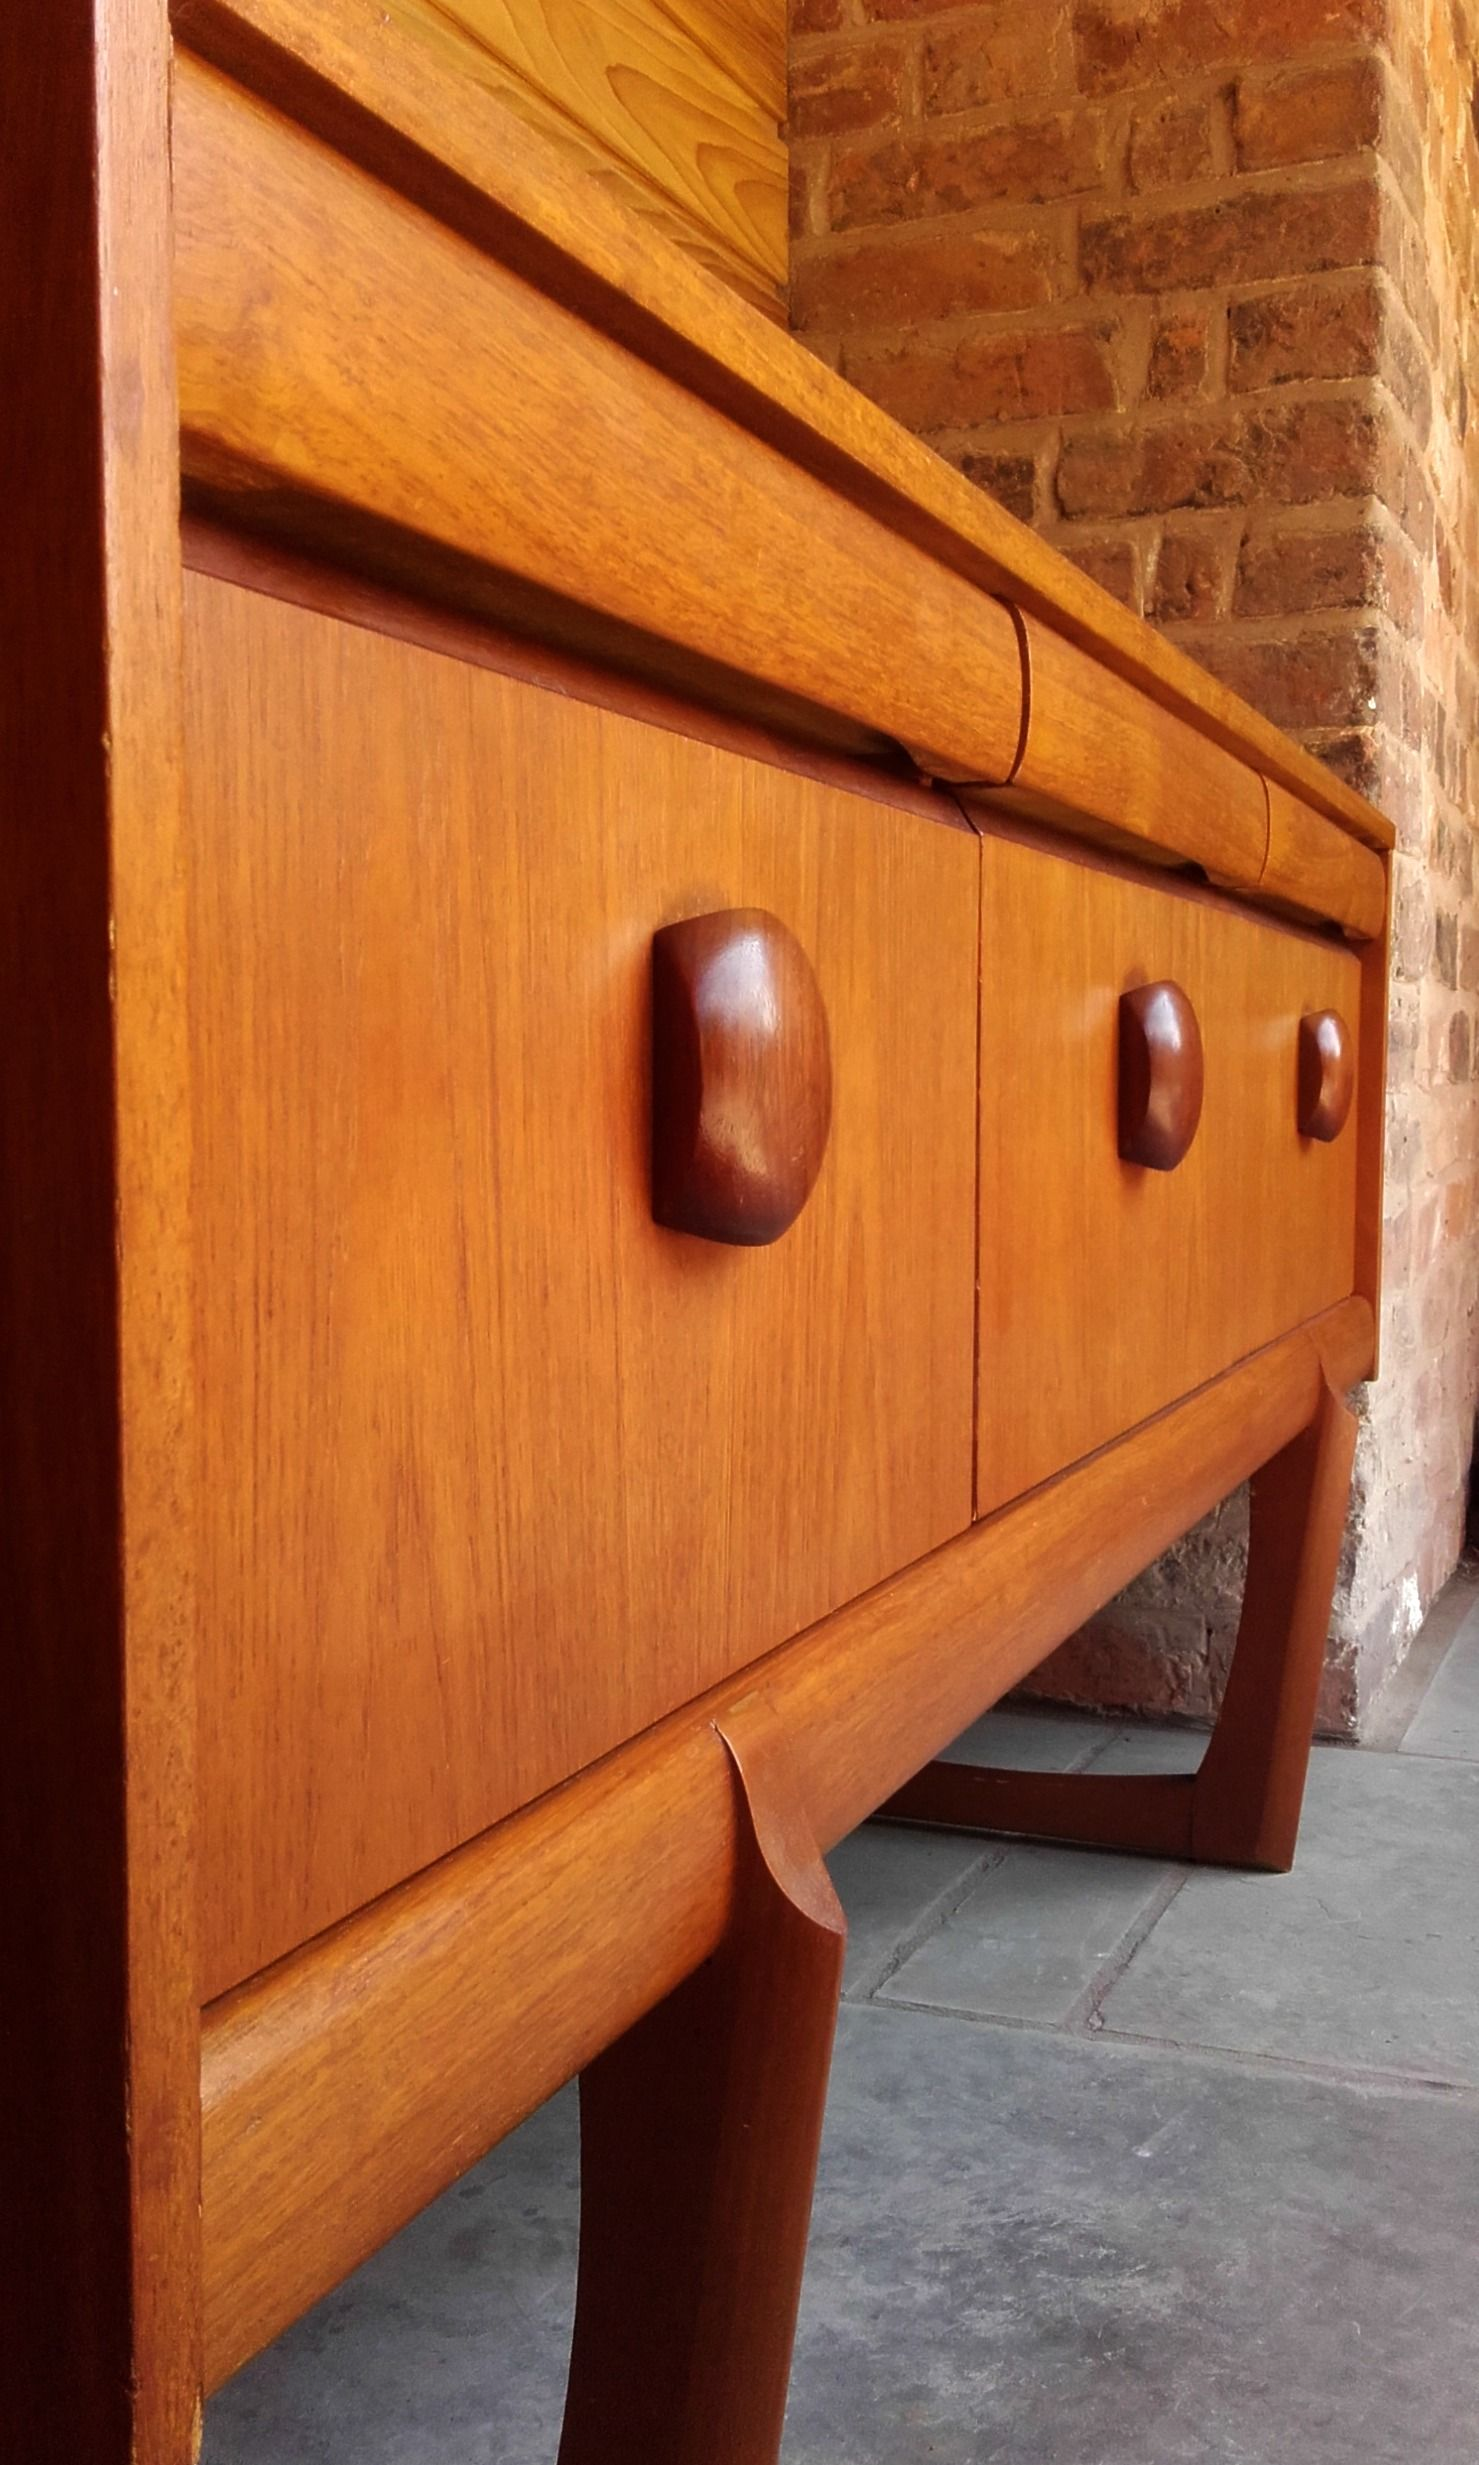 This Is A Superb Sideboard With Strong, Clean Lines, Punctuated